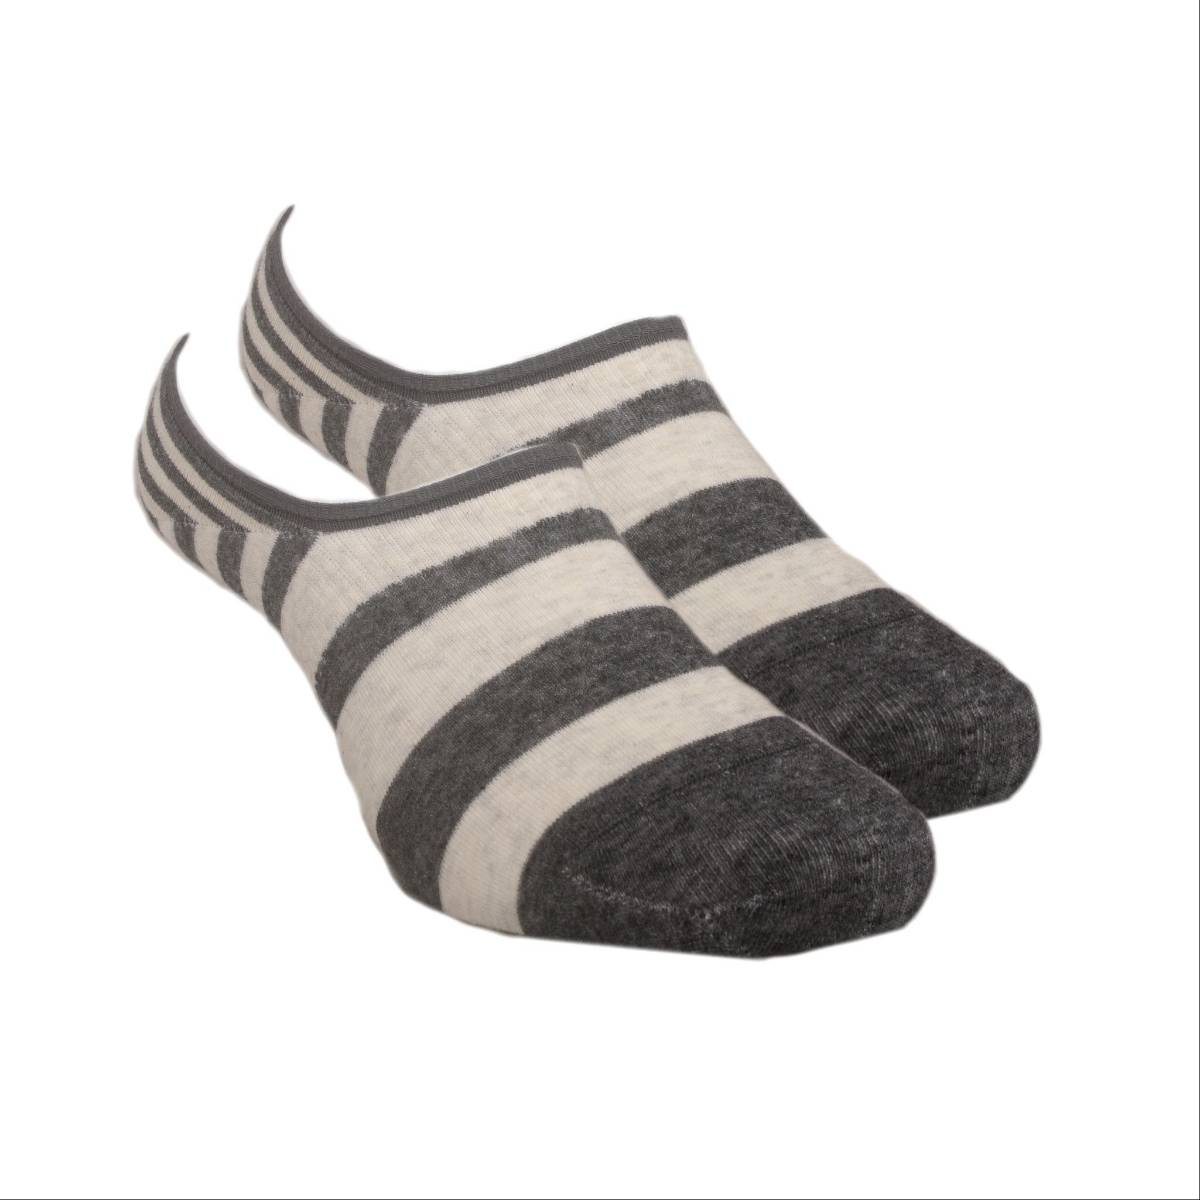 Kaos Kaki / Edgard Gray Socks